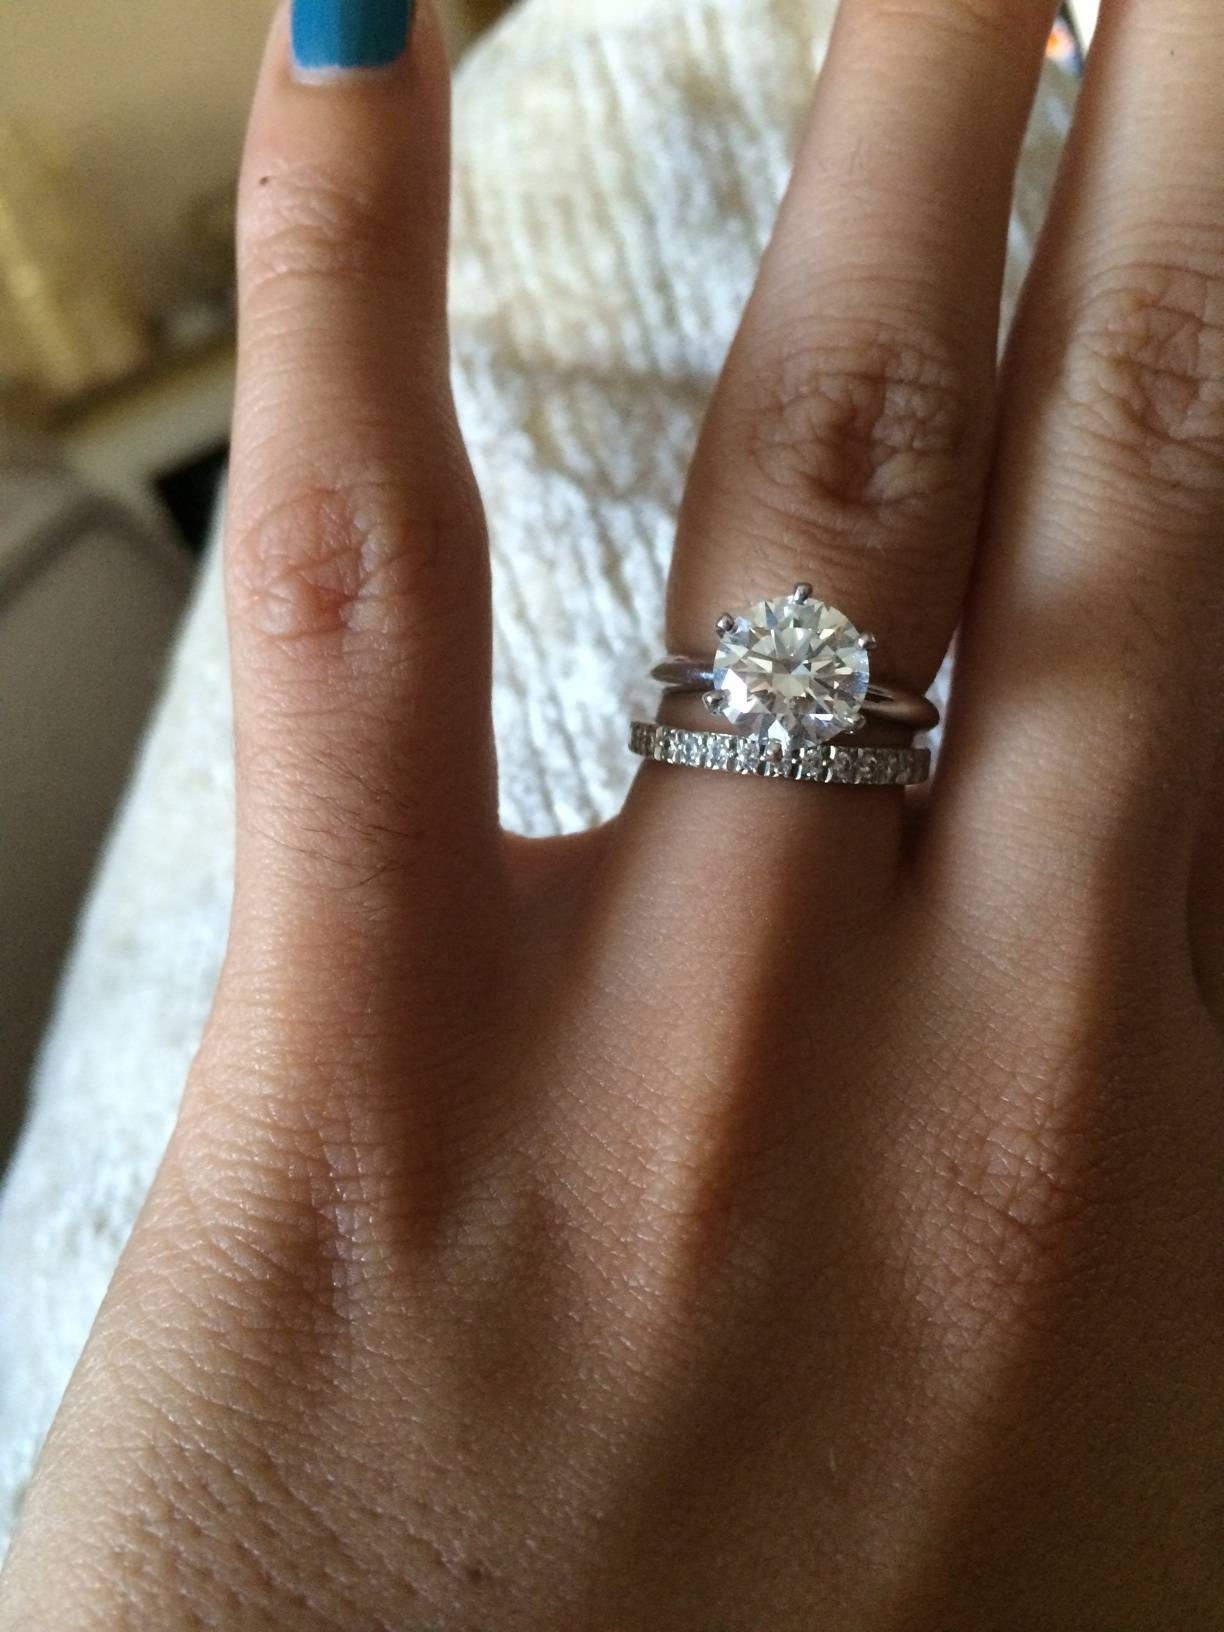 Show Me Your Wedding Band With Tiffany/style Solitaire E Ring With Tiffanys Wedding Bands (Gallery 311 of 339)